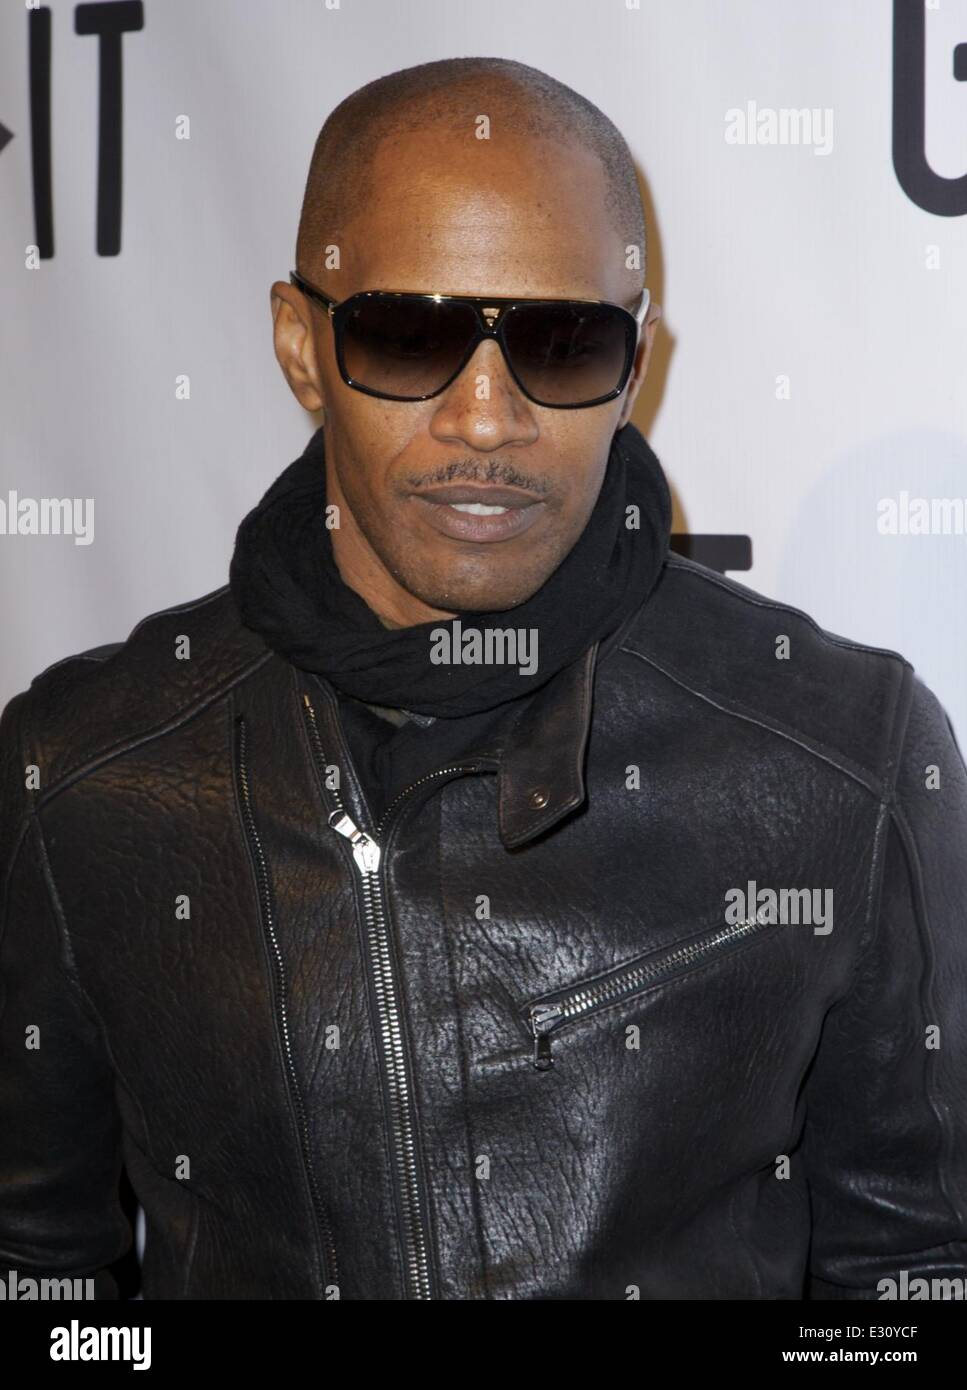 20f5e51e23 Jamie Foxx Sunglasses Stock Photos   Jamie Foxx Sunglasses Stock ...